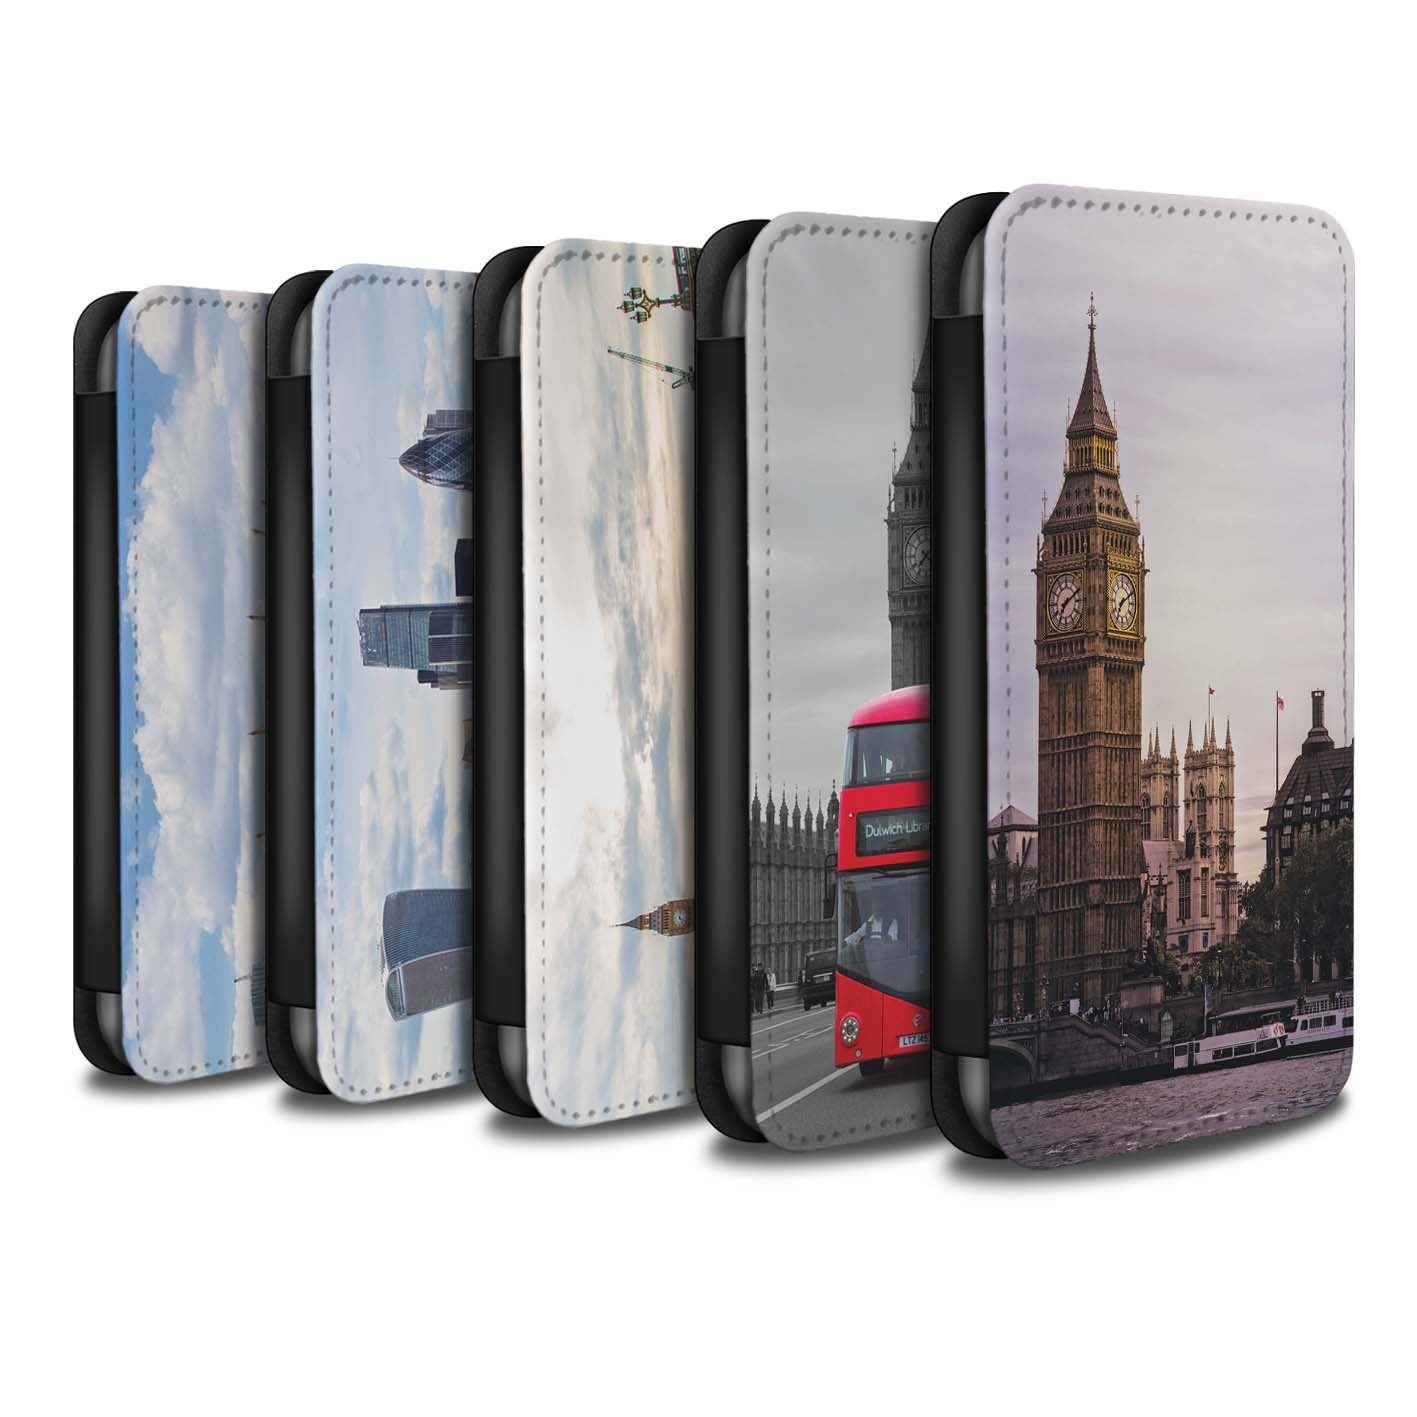 STUFF4 PU Leather Wallet Flip Case/Cover for Apple iPhone X/10 / Pack 14pcs Design / London Sites Collection